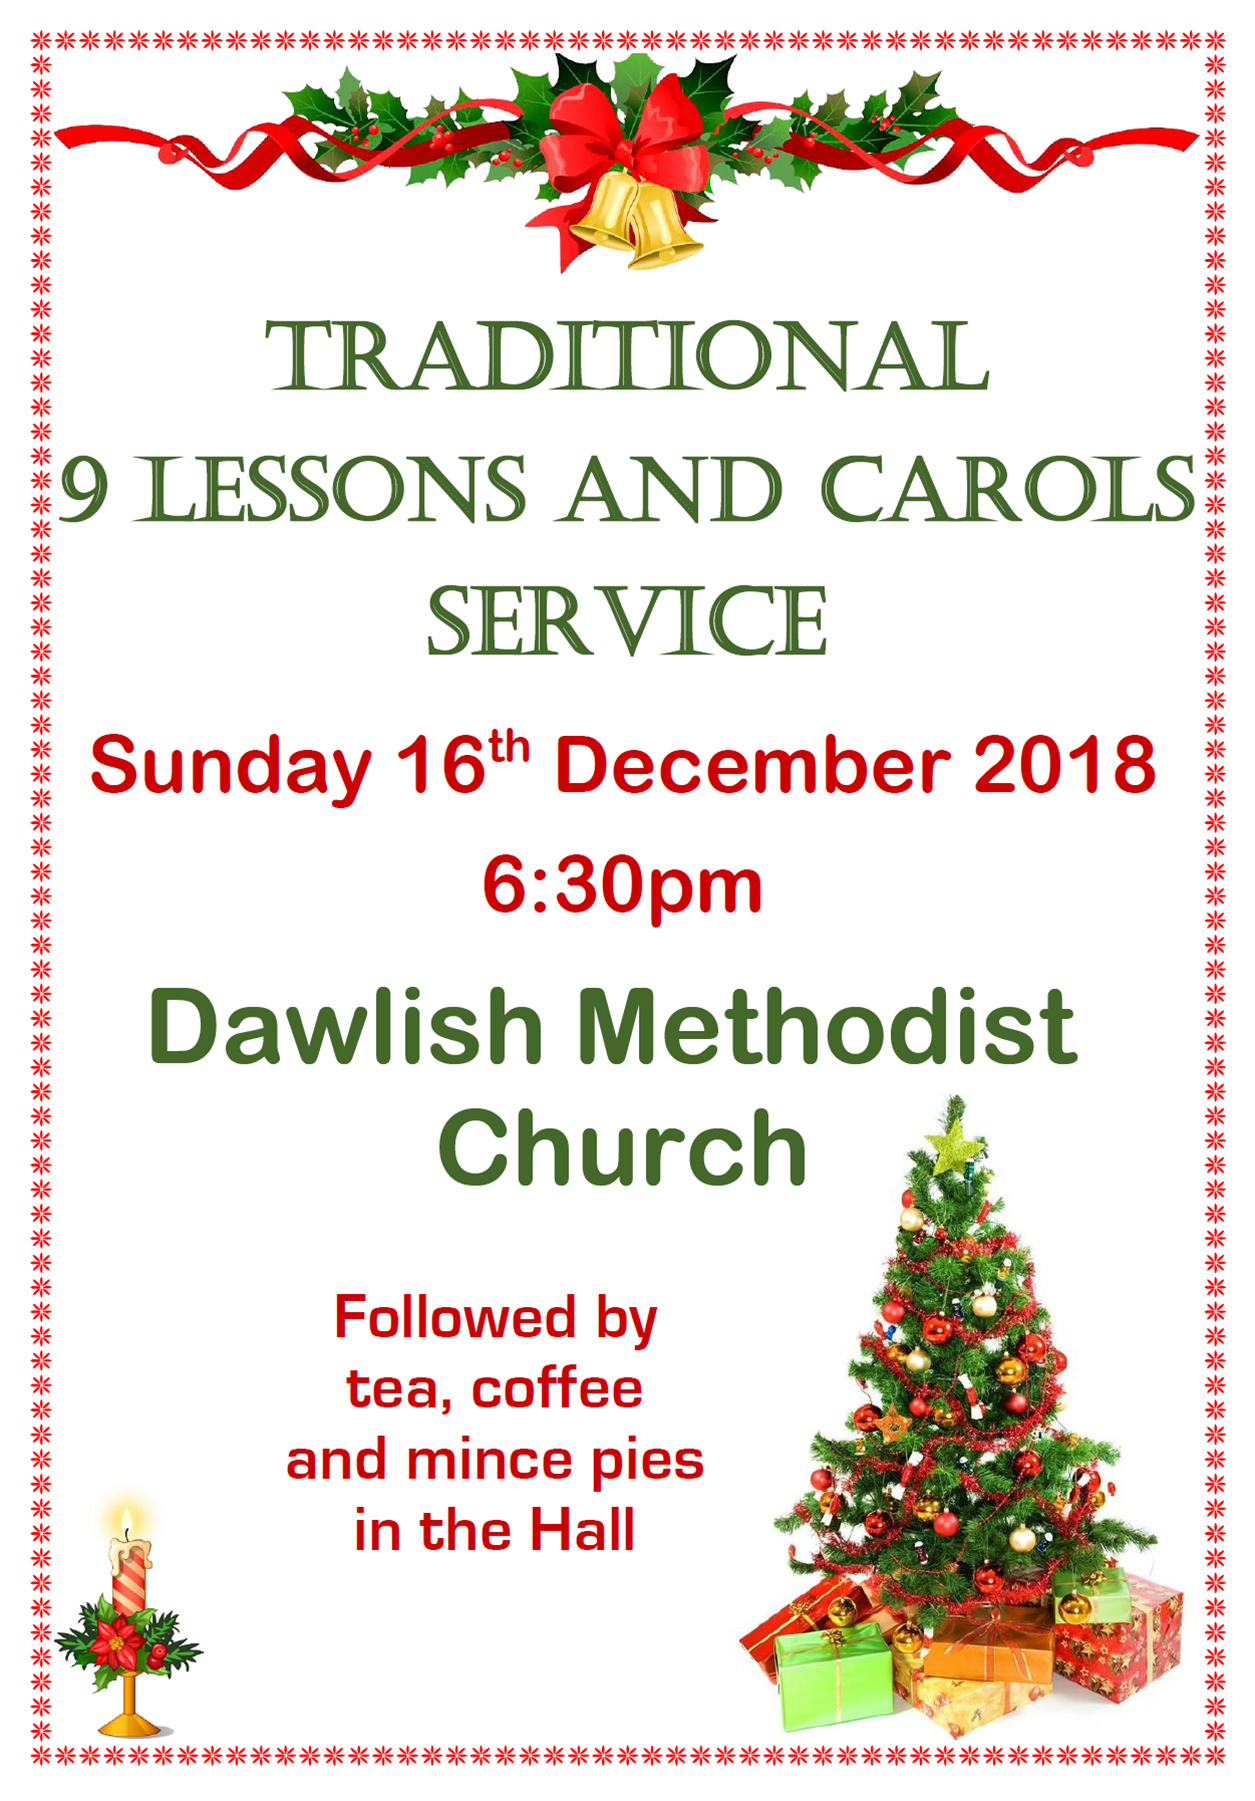 Dawlish 9 Lessons and Carols @ Dawlish Methodist Church